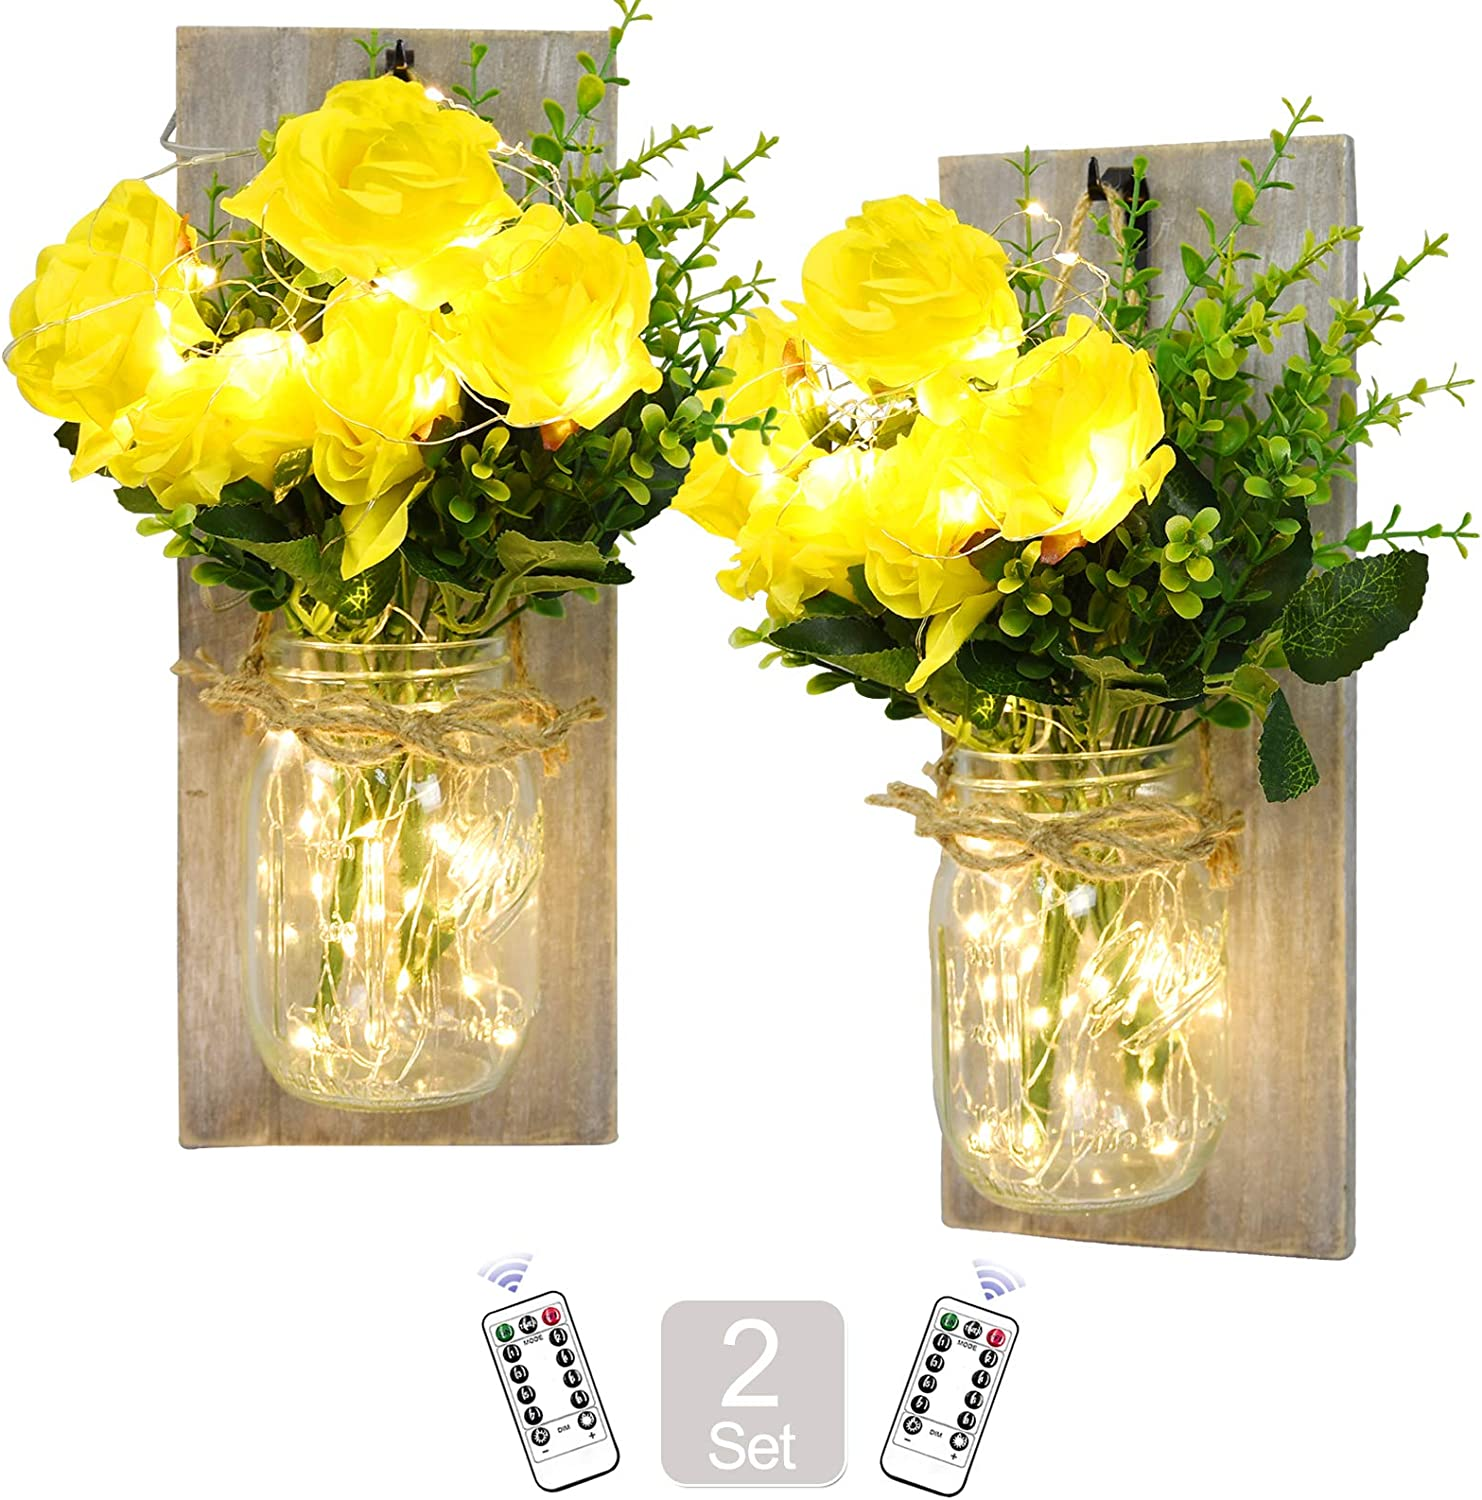 Mason Jar Sconces Wall Decor - Limited price sale Hanging Wa OFFer Wooden Rustic Handmade